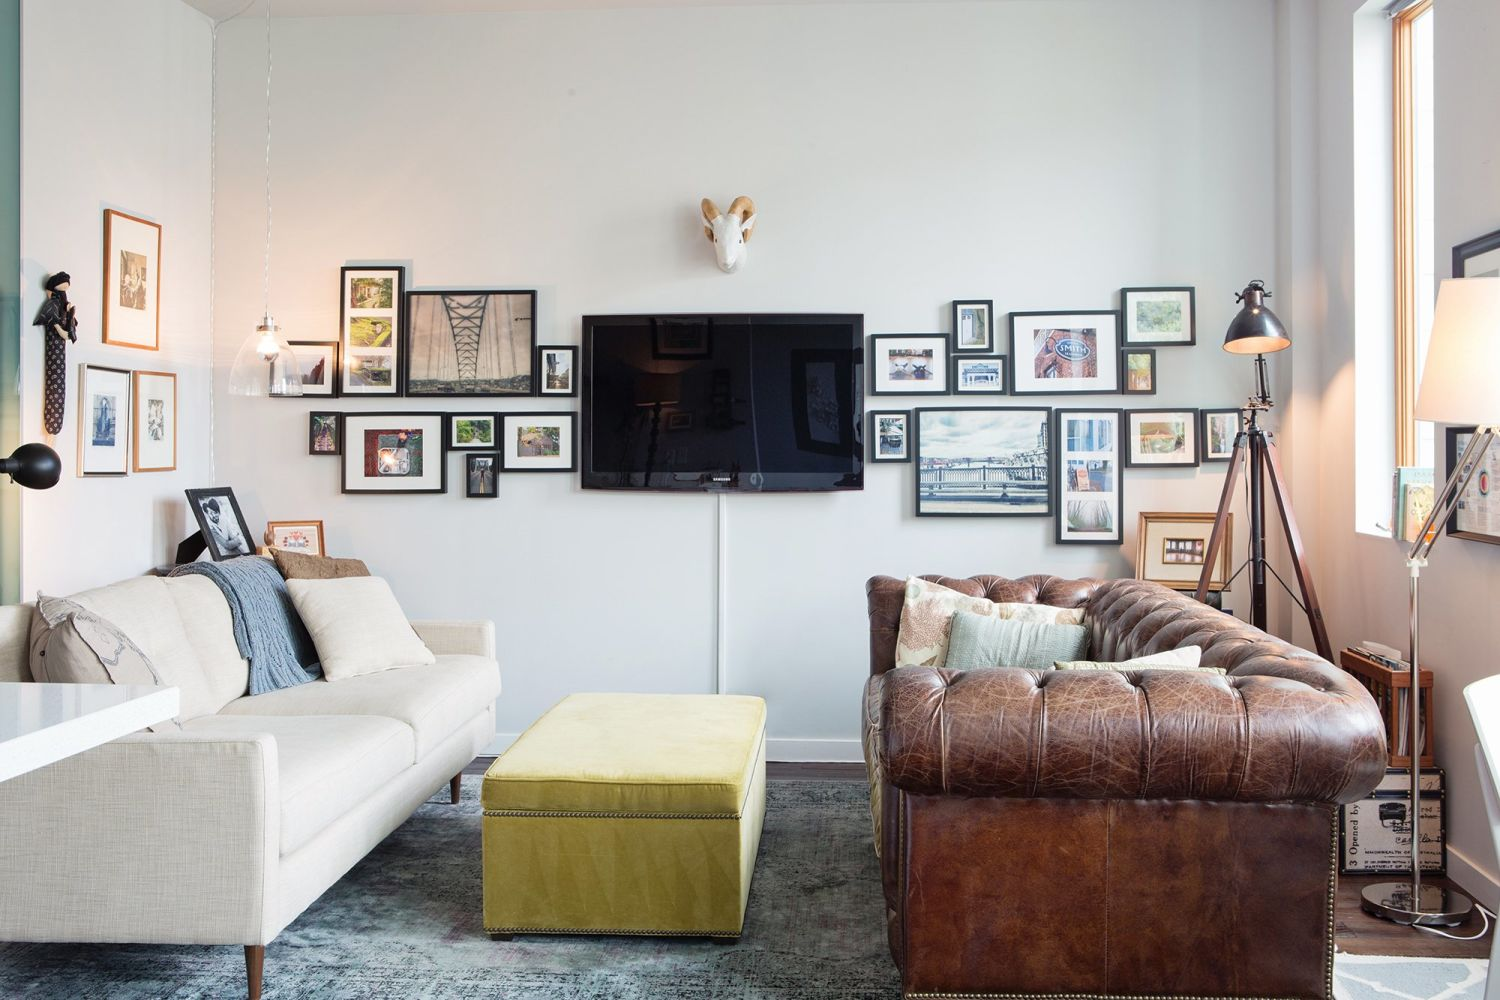 Interior Furniture Design For Living Room ~ Creative ways to rethink your living room layout apartment therapy